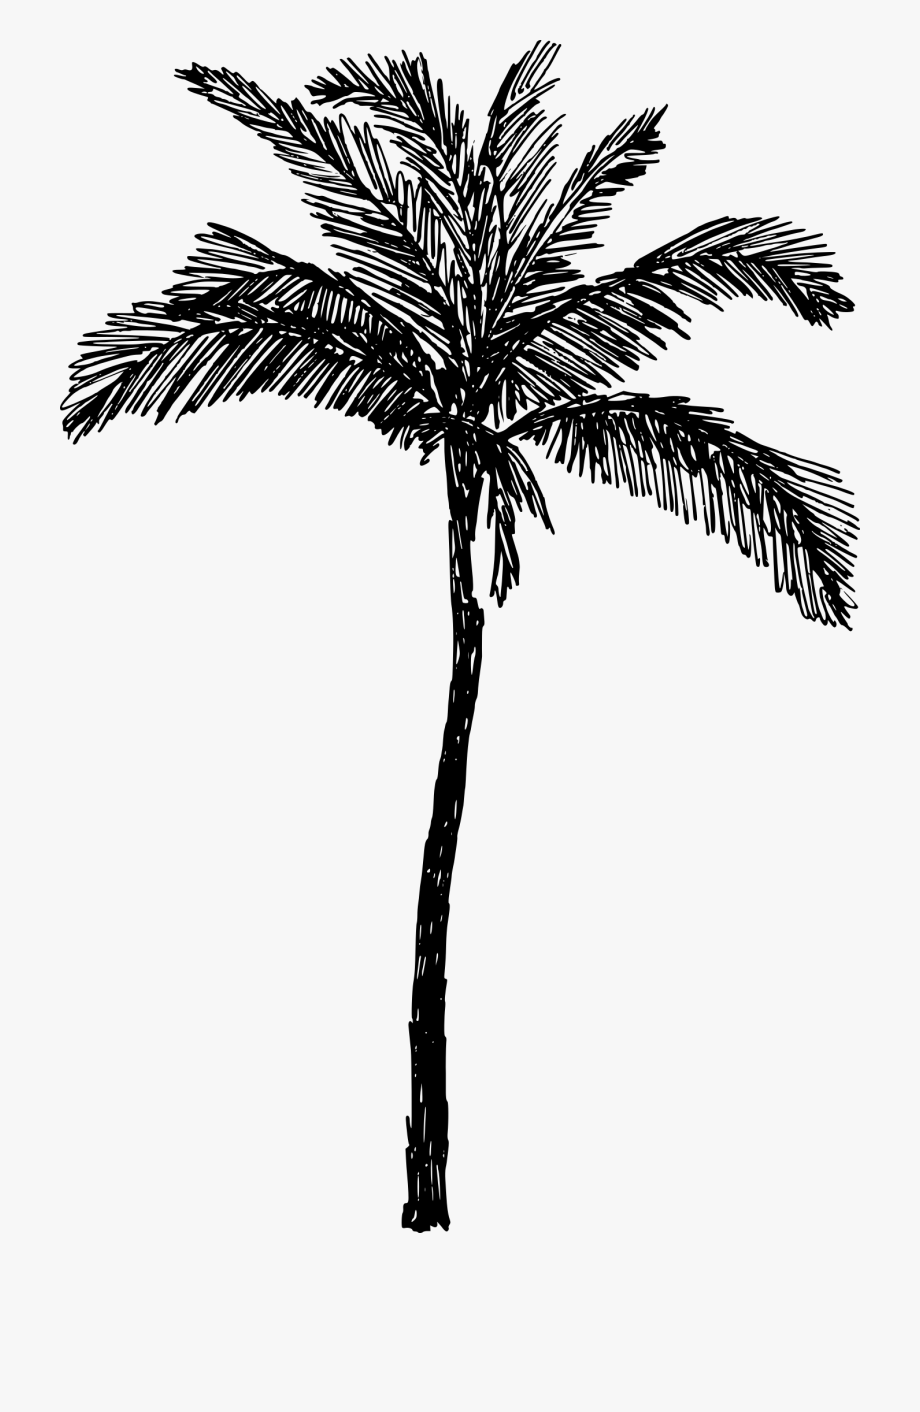 Sillhouette clipart line art image black and white stock Palm Trees Drawing Clip Art Line Art Coconut - Palm Tree Png ... image black and white stock